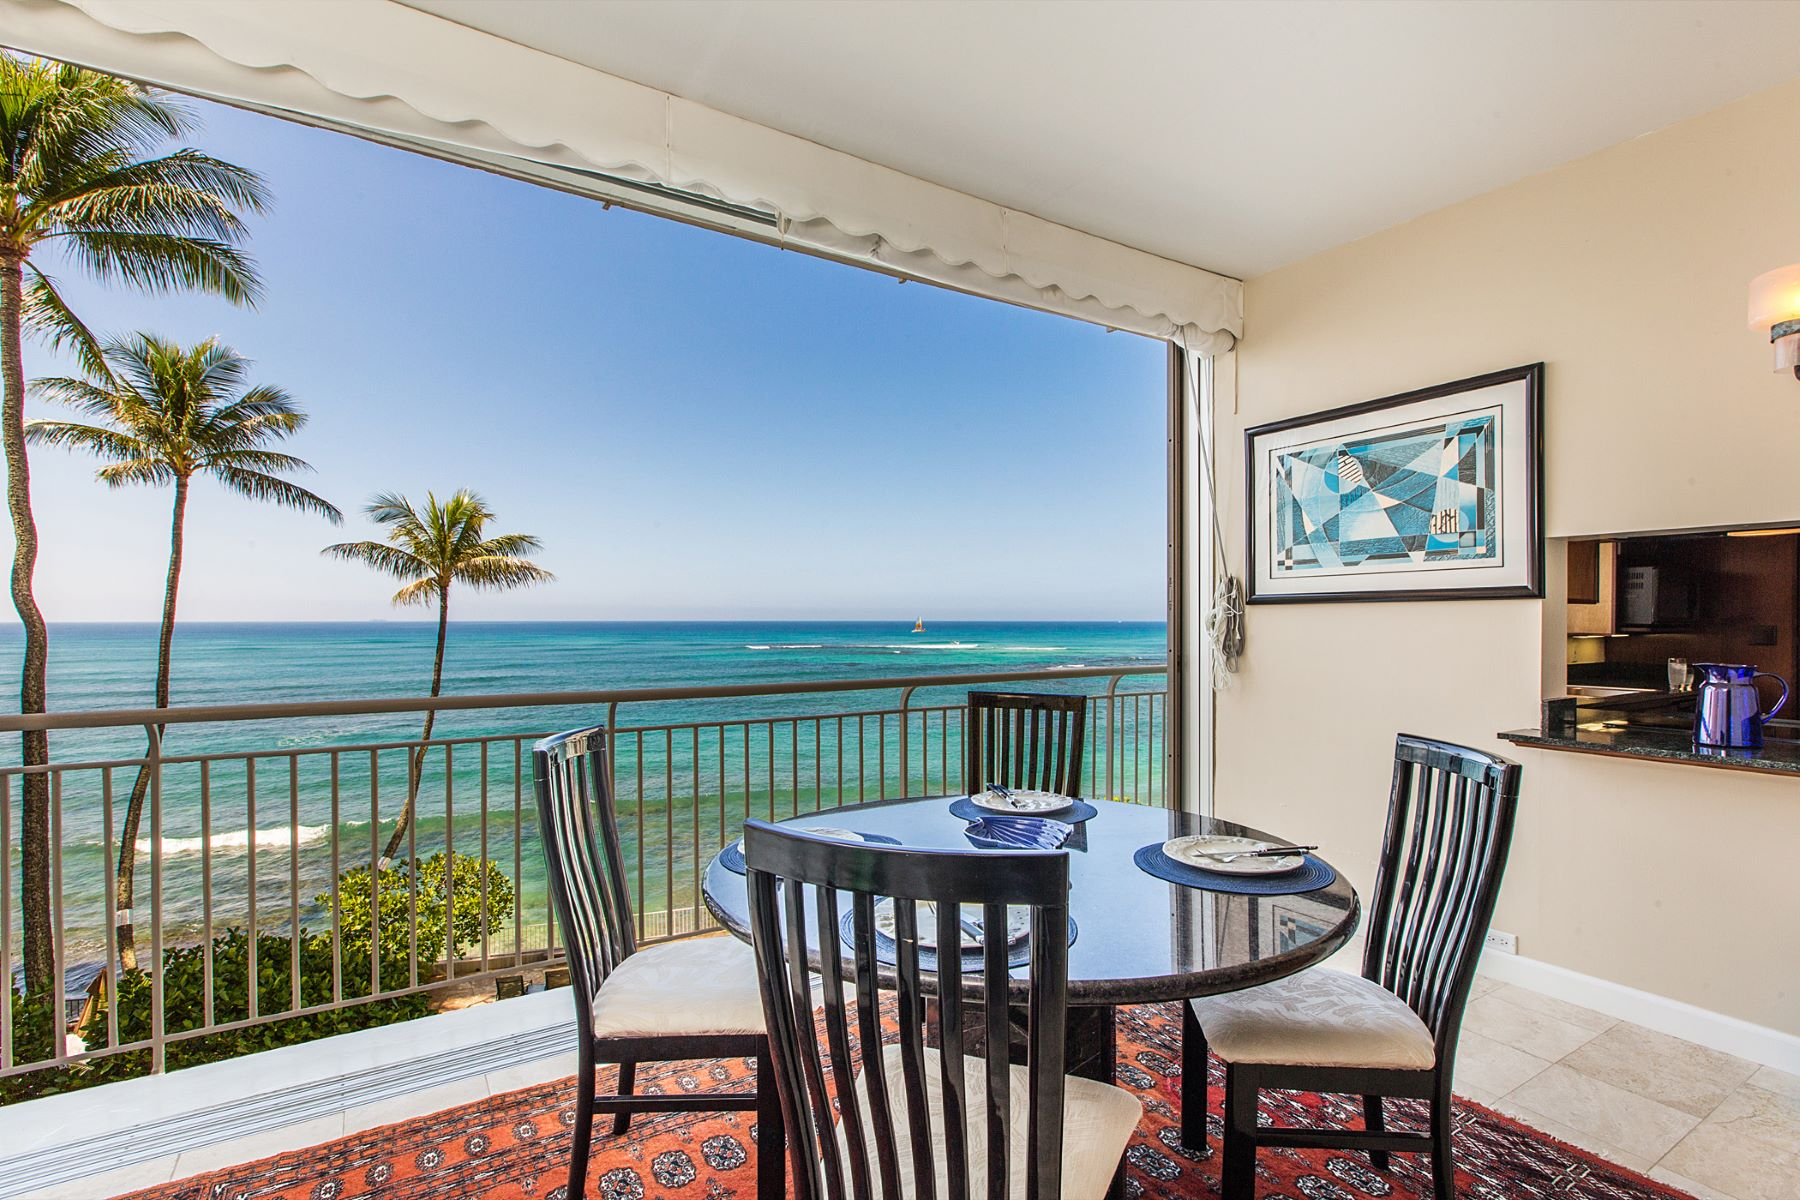 Condominium for Sale at Spellbinding Ocean Views 2969 Kalakaua Avenue #202 Honolulu, Hawaii 96815 United States